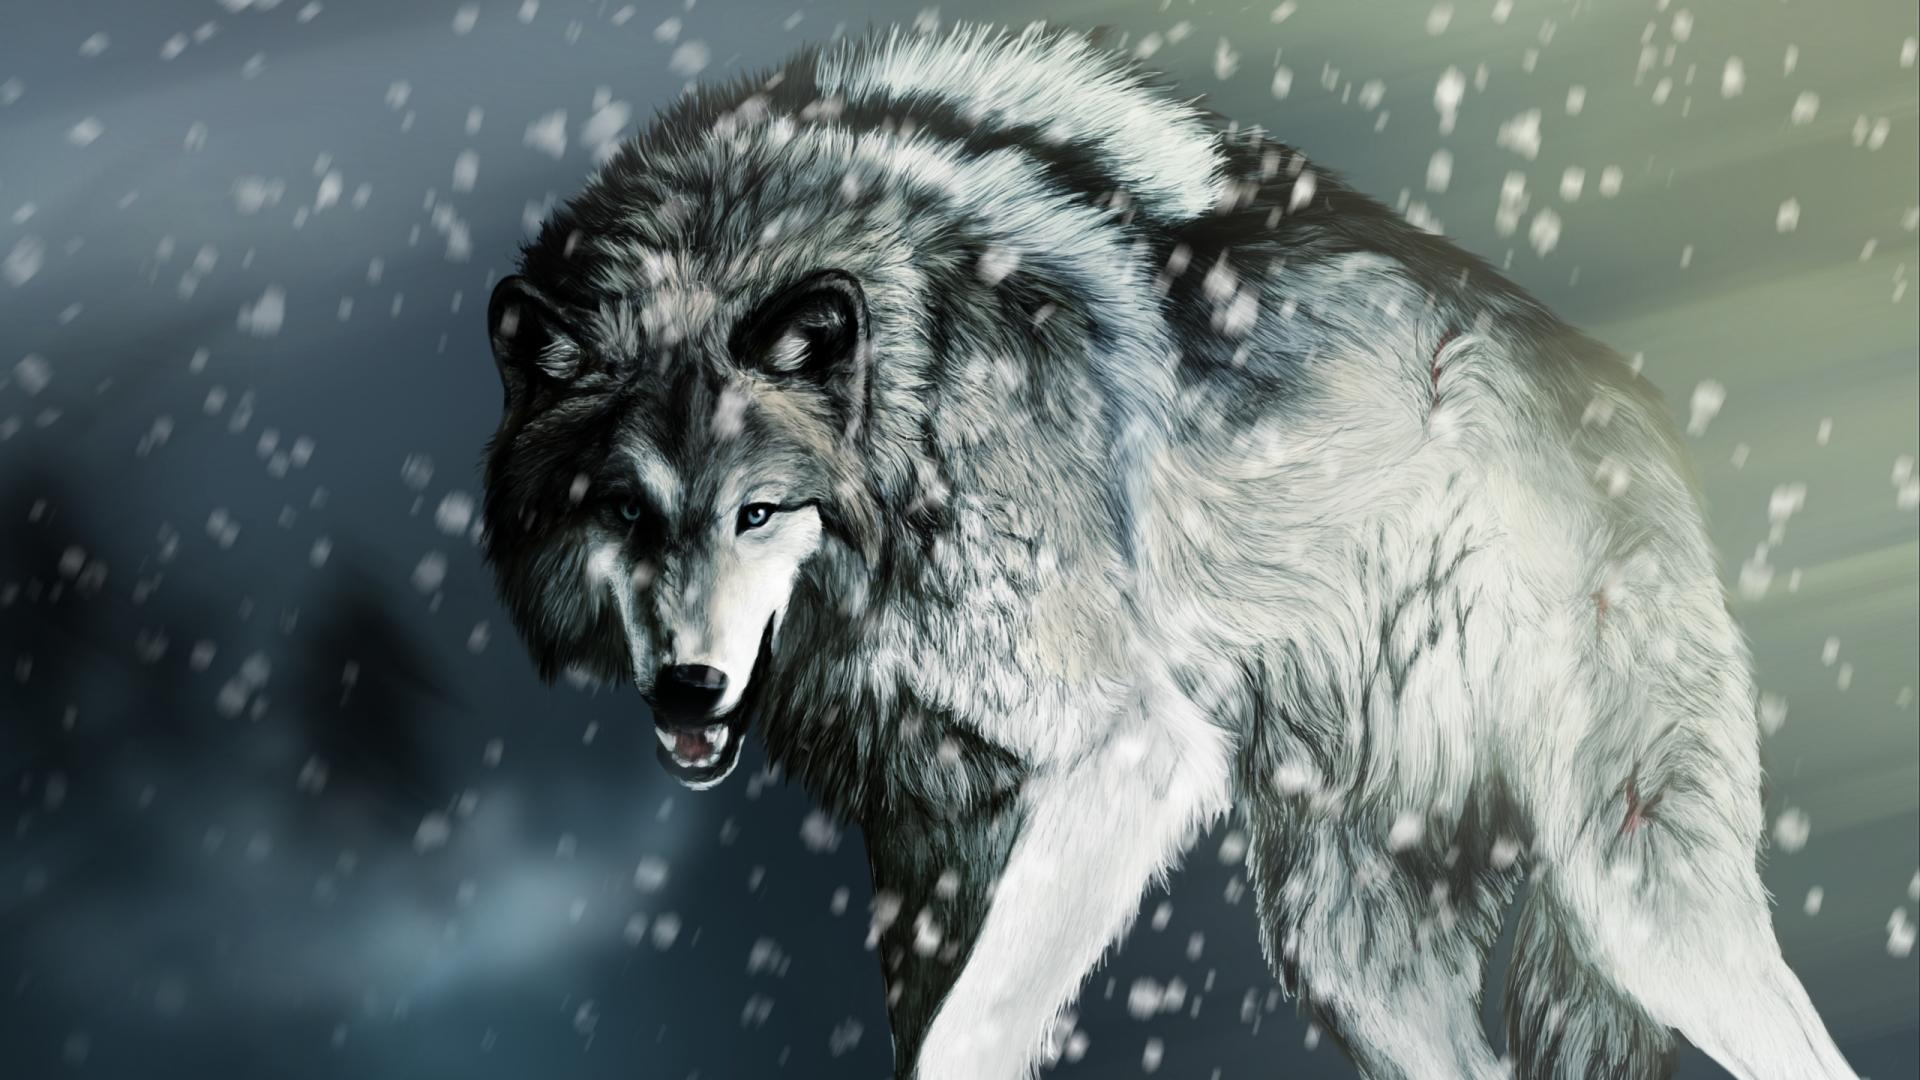 Cool Wolf Backgrounds 1920x1080